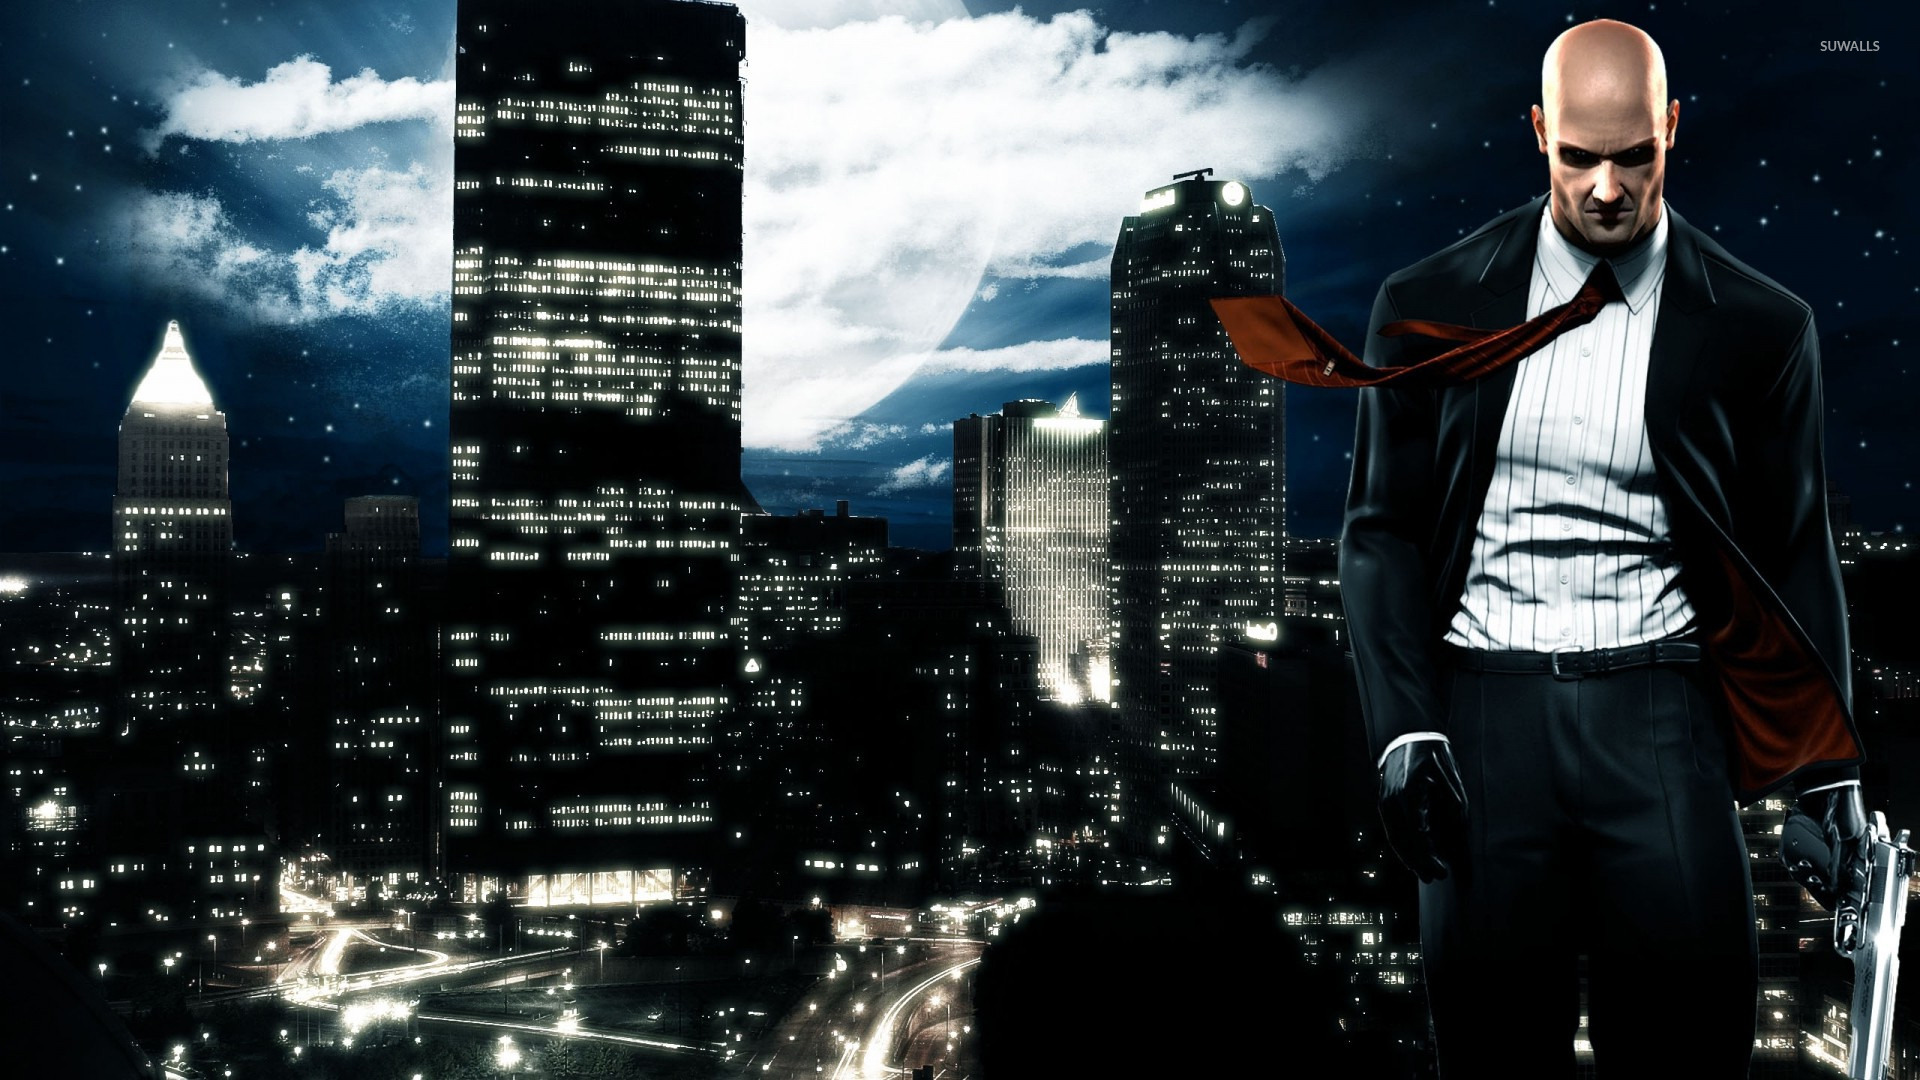 Hitman Absolution 7 Wallpaper Game Wallpapers 17173